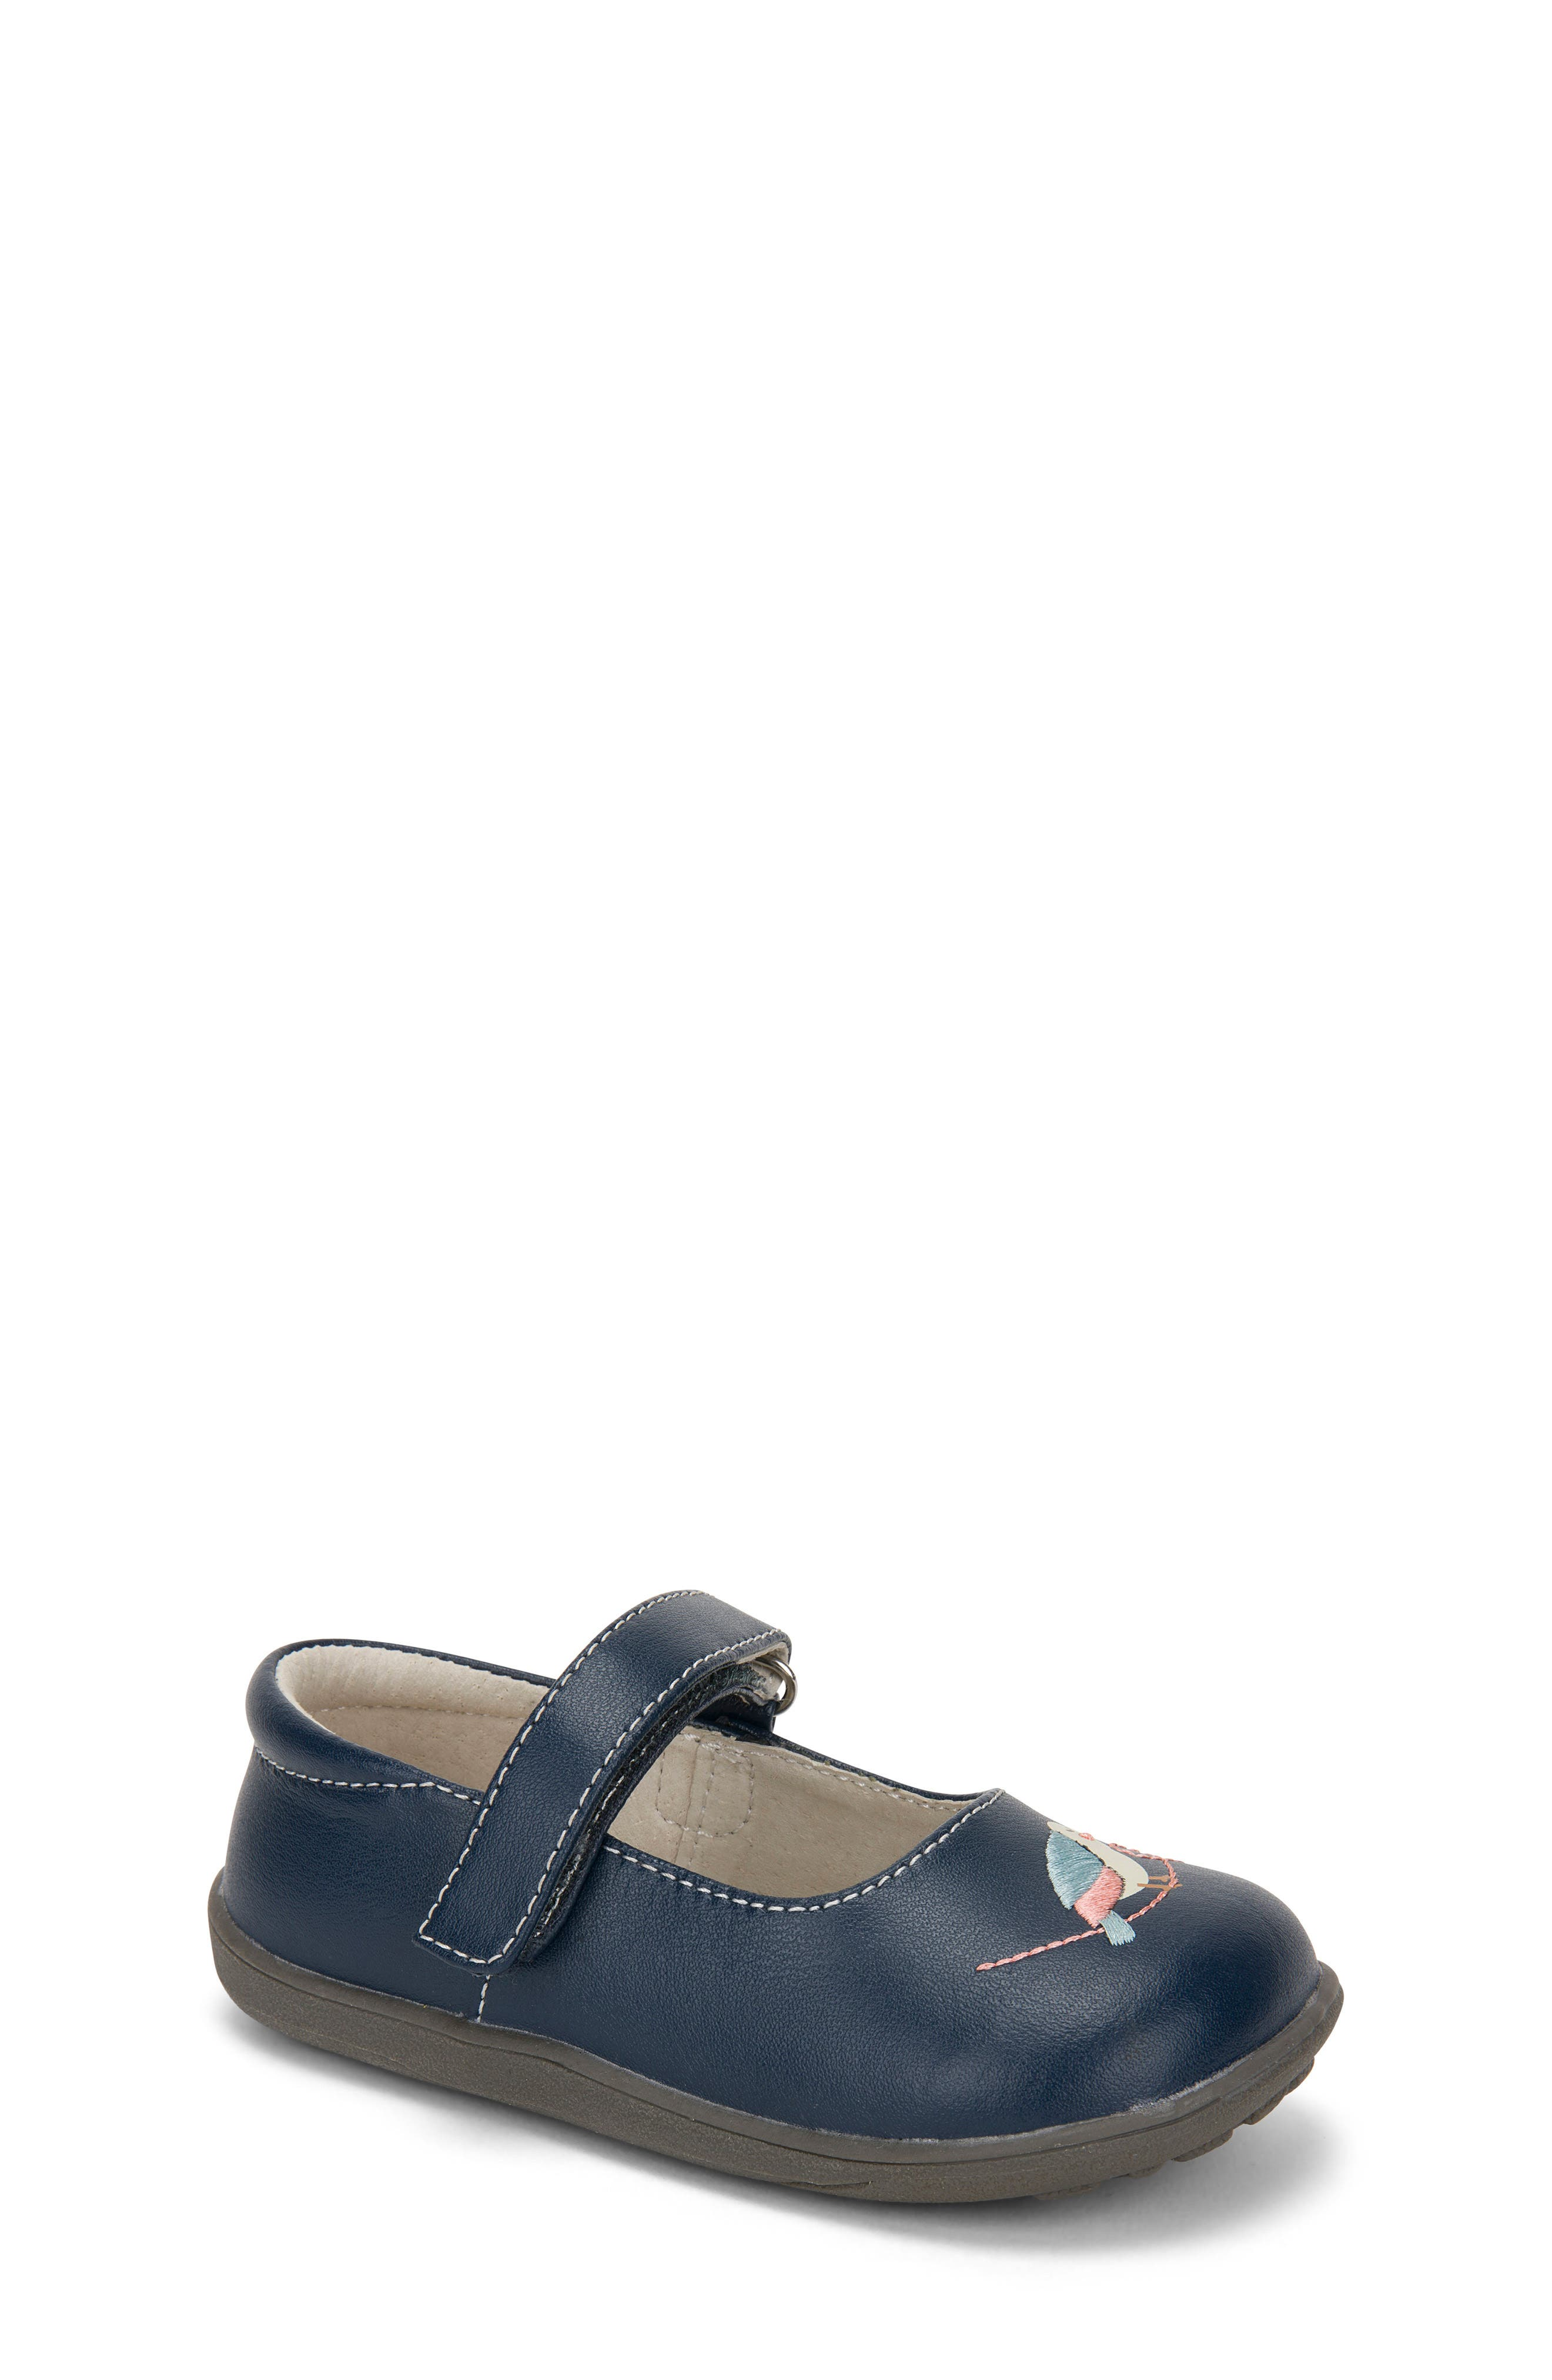 Ava Mary Jane Flat,                         Main,                         color, Navy Leather